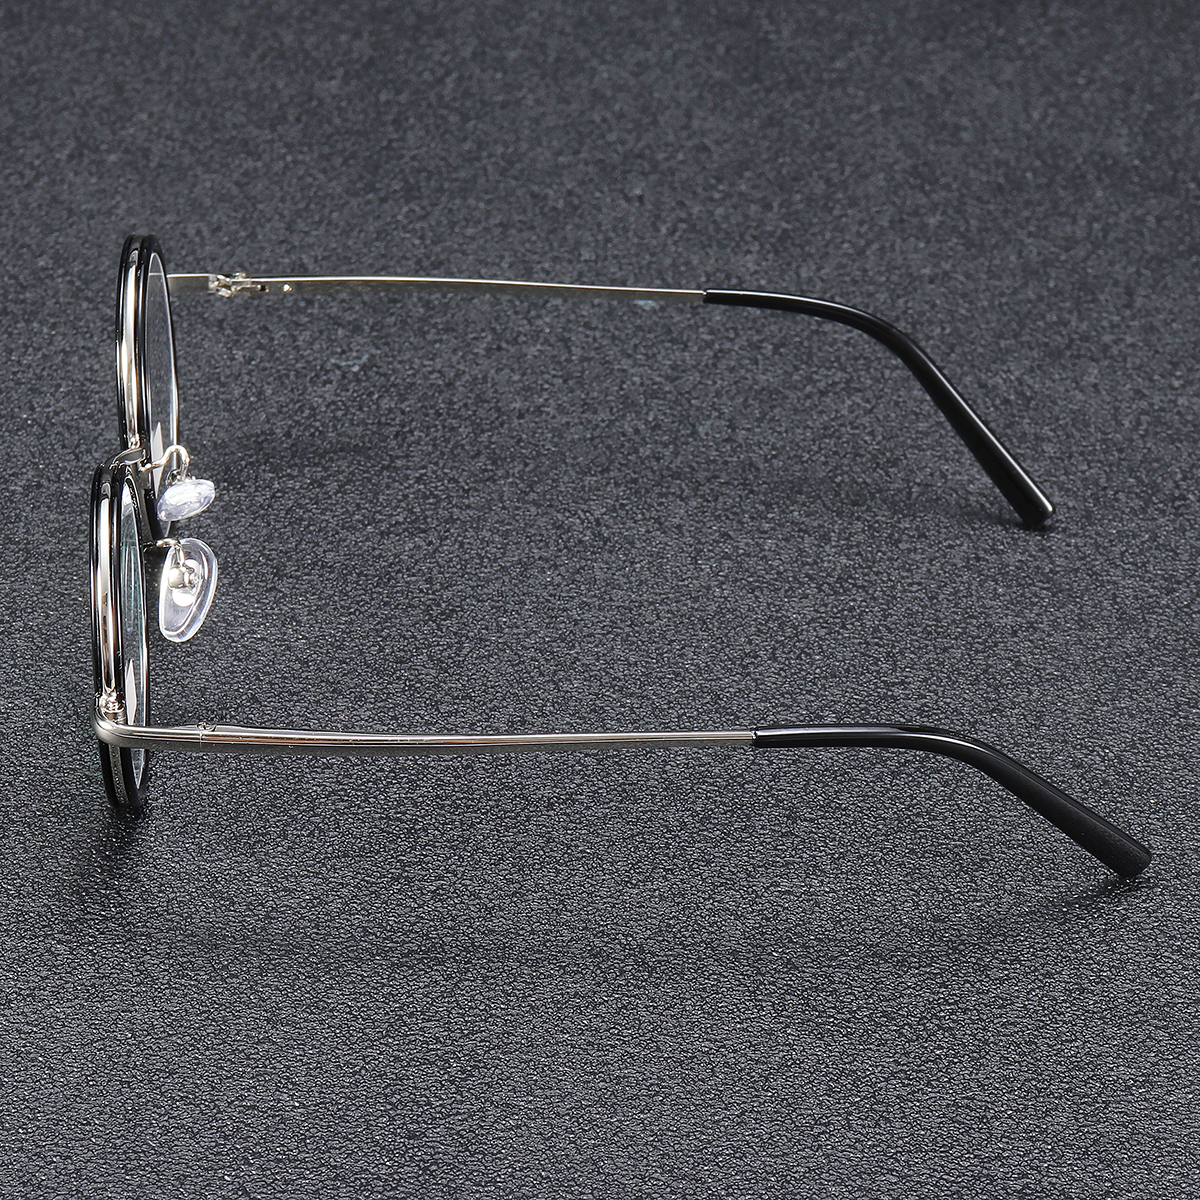 Minleaf Retro Round Light Weight Magnifying Reading Glasses